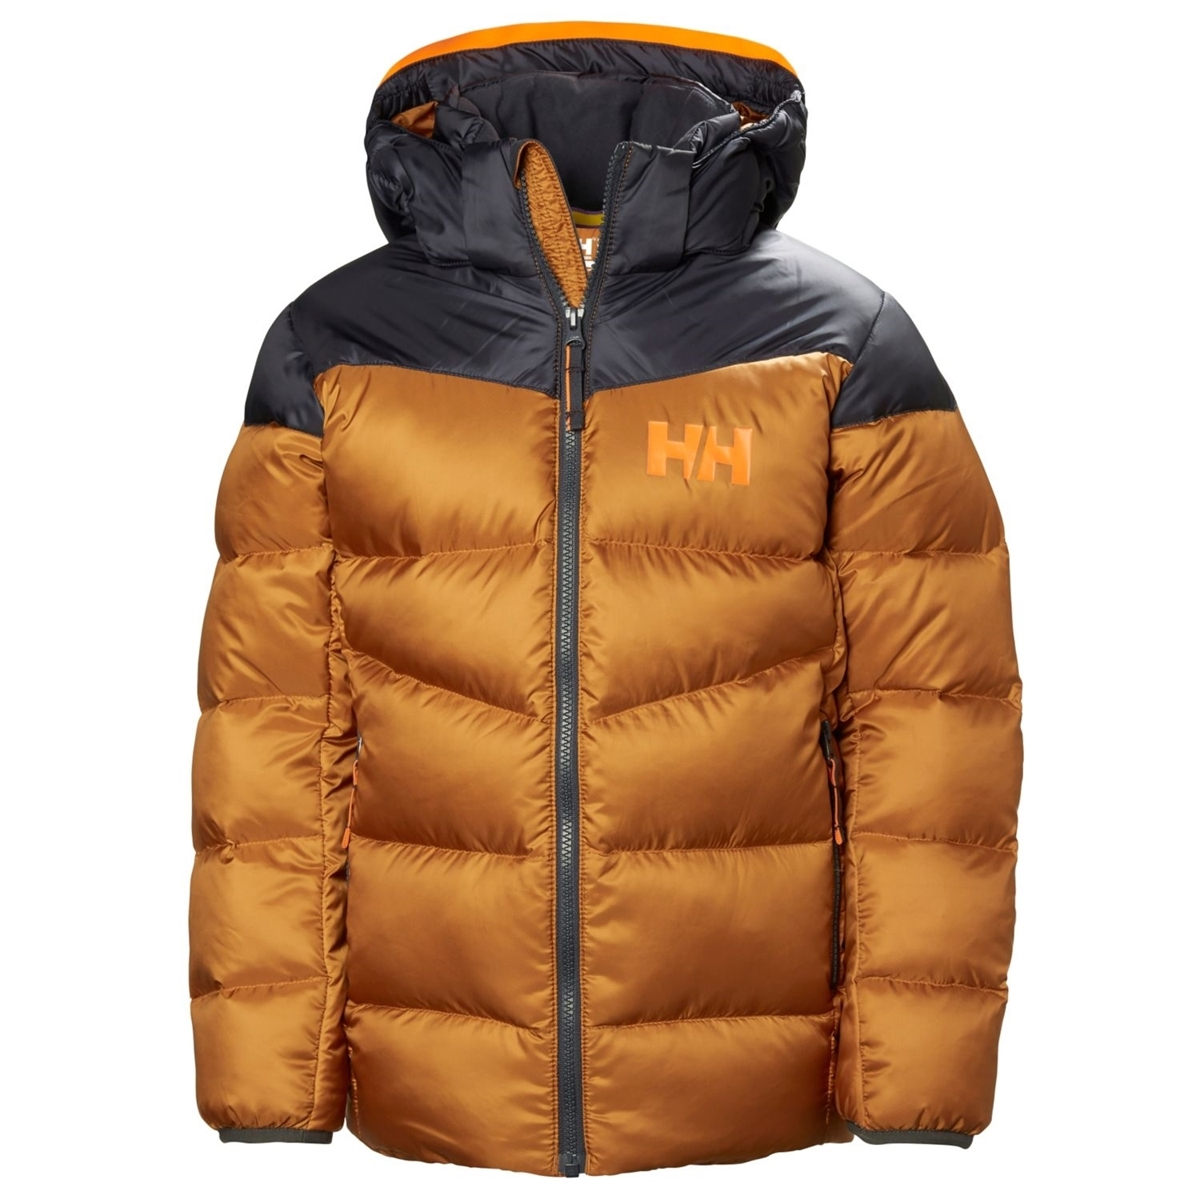 8380b2c1 Helly Hansen JR ISFJORD DOWN MIX JACKET Cinnamon- Nava Sport - Vi ...